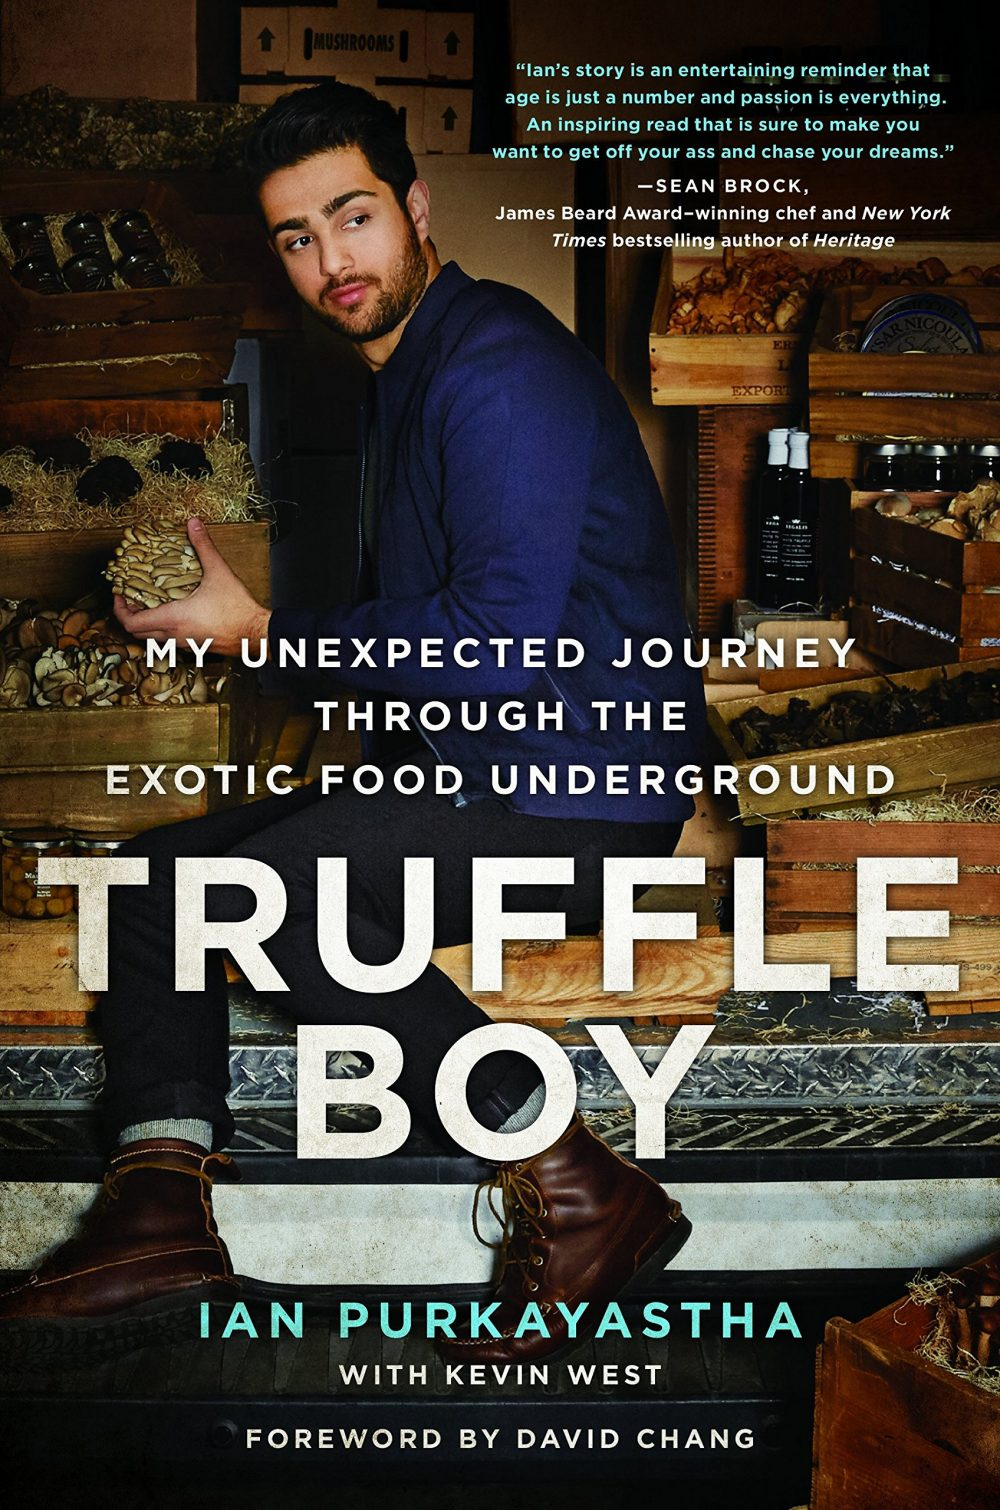 ​Truffle Boy: My Unexpected Journey Through the Exotic Food Underground